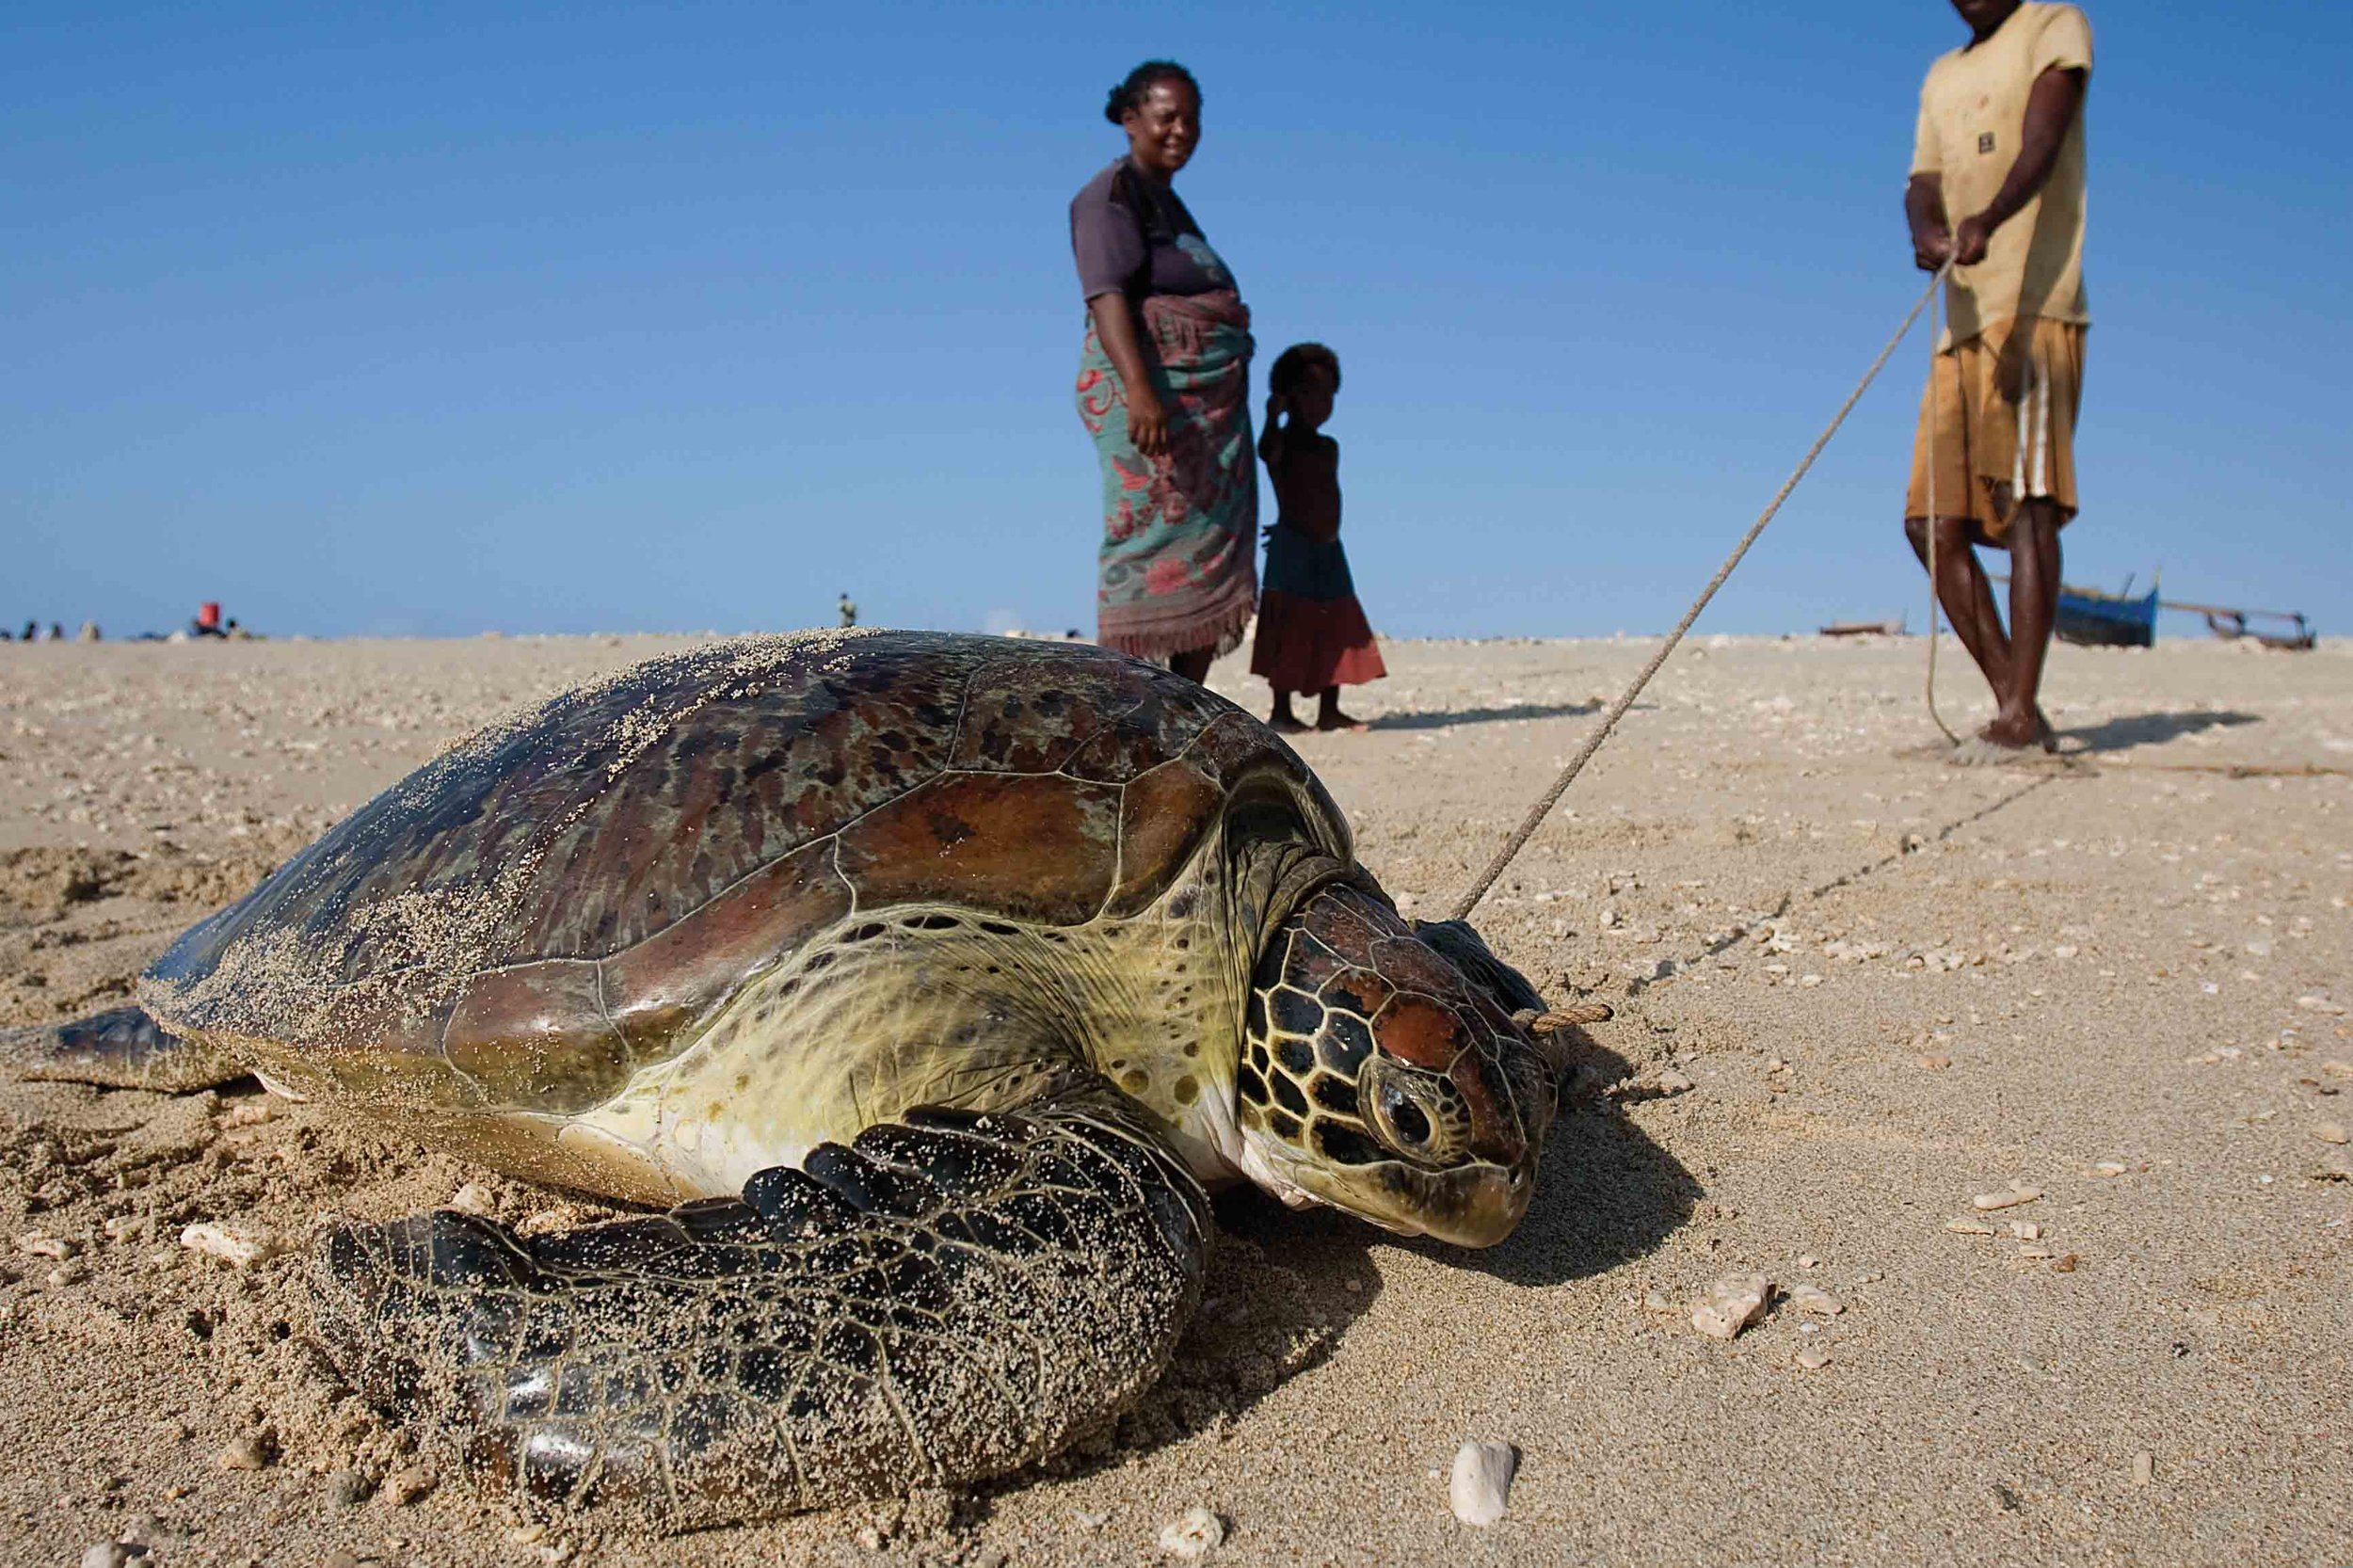 Sea turtles have been traditionally hunted by Vezo tribesmen in southwestern Madagascar for centuries. © Garth Cripps